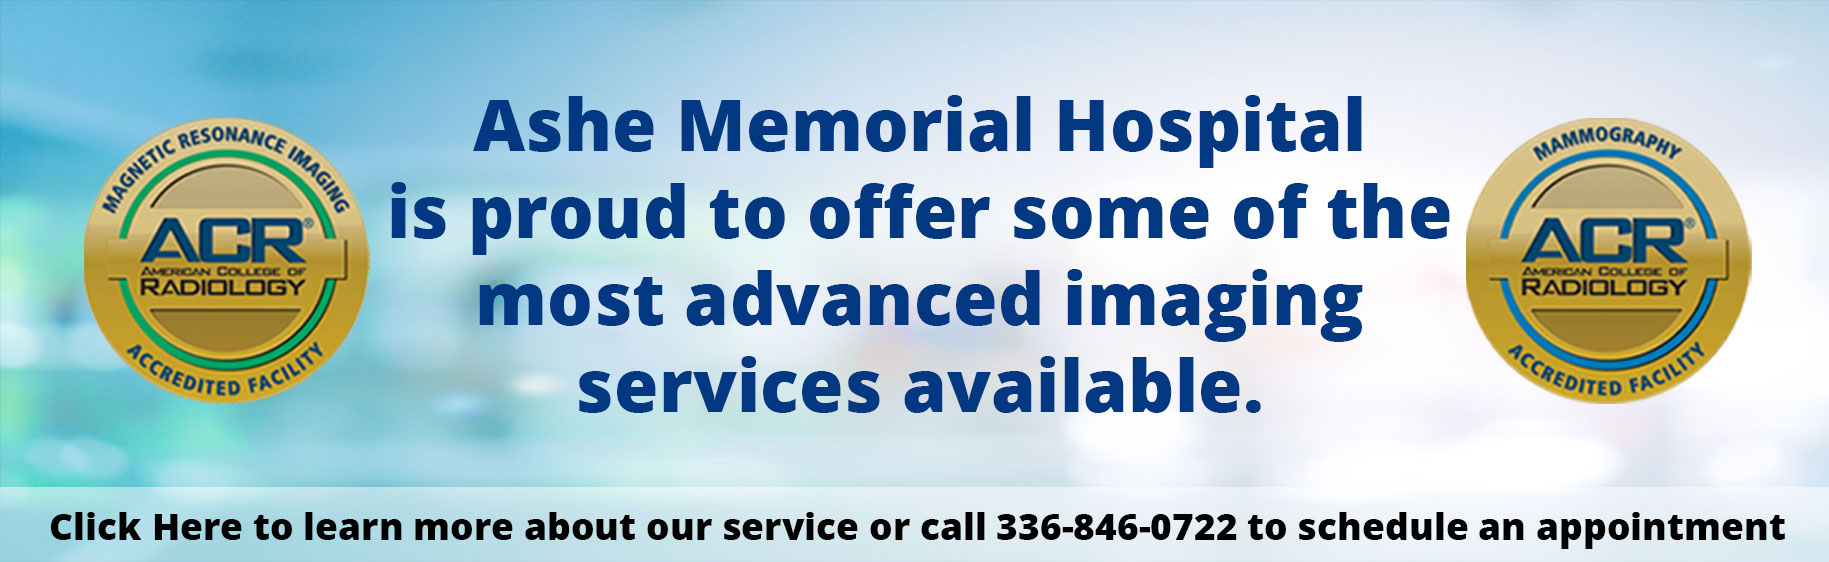 Banner says: Ashe Memorial Hospital is proud to offer some of the most advnaced imaging services available. click here to learn more about our services or call 336-846-0722 to schedule an appointment.